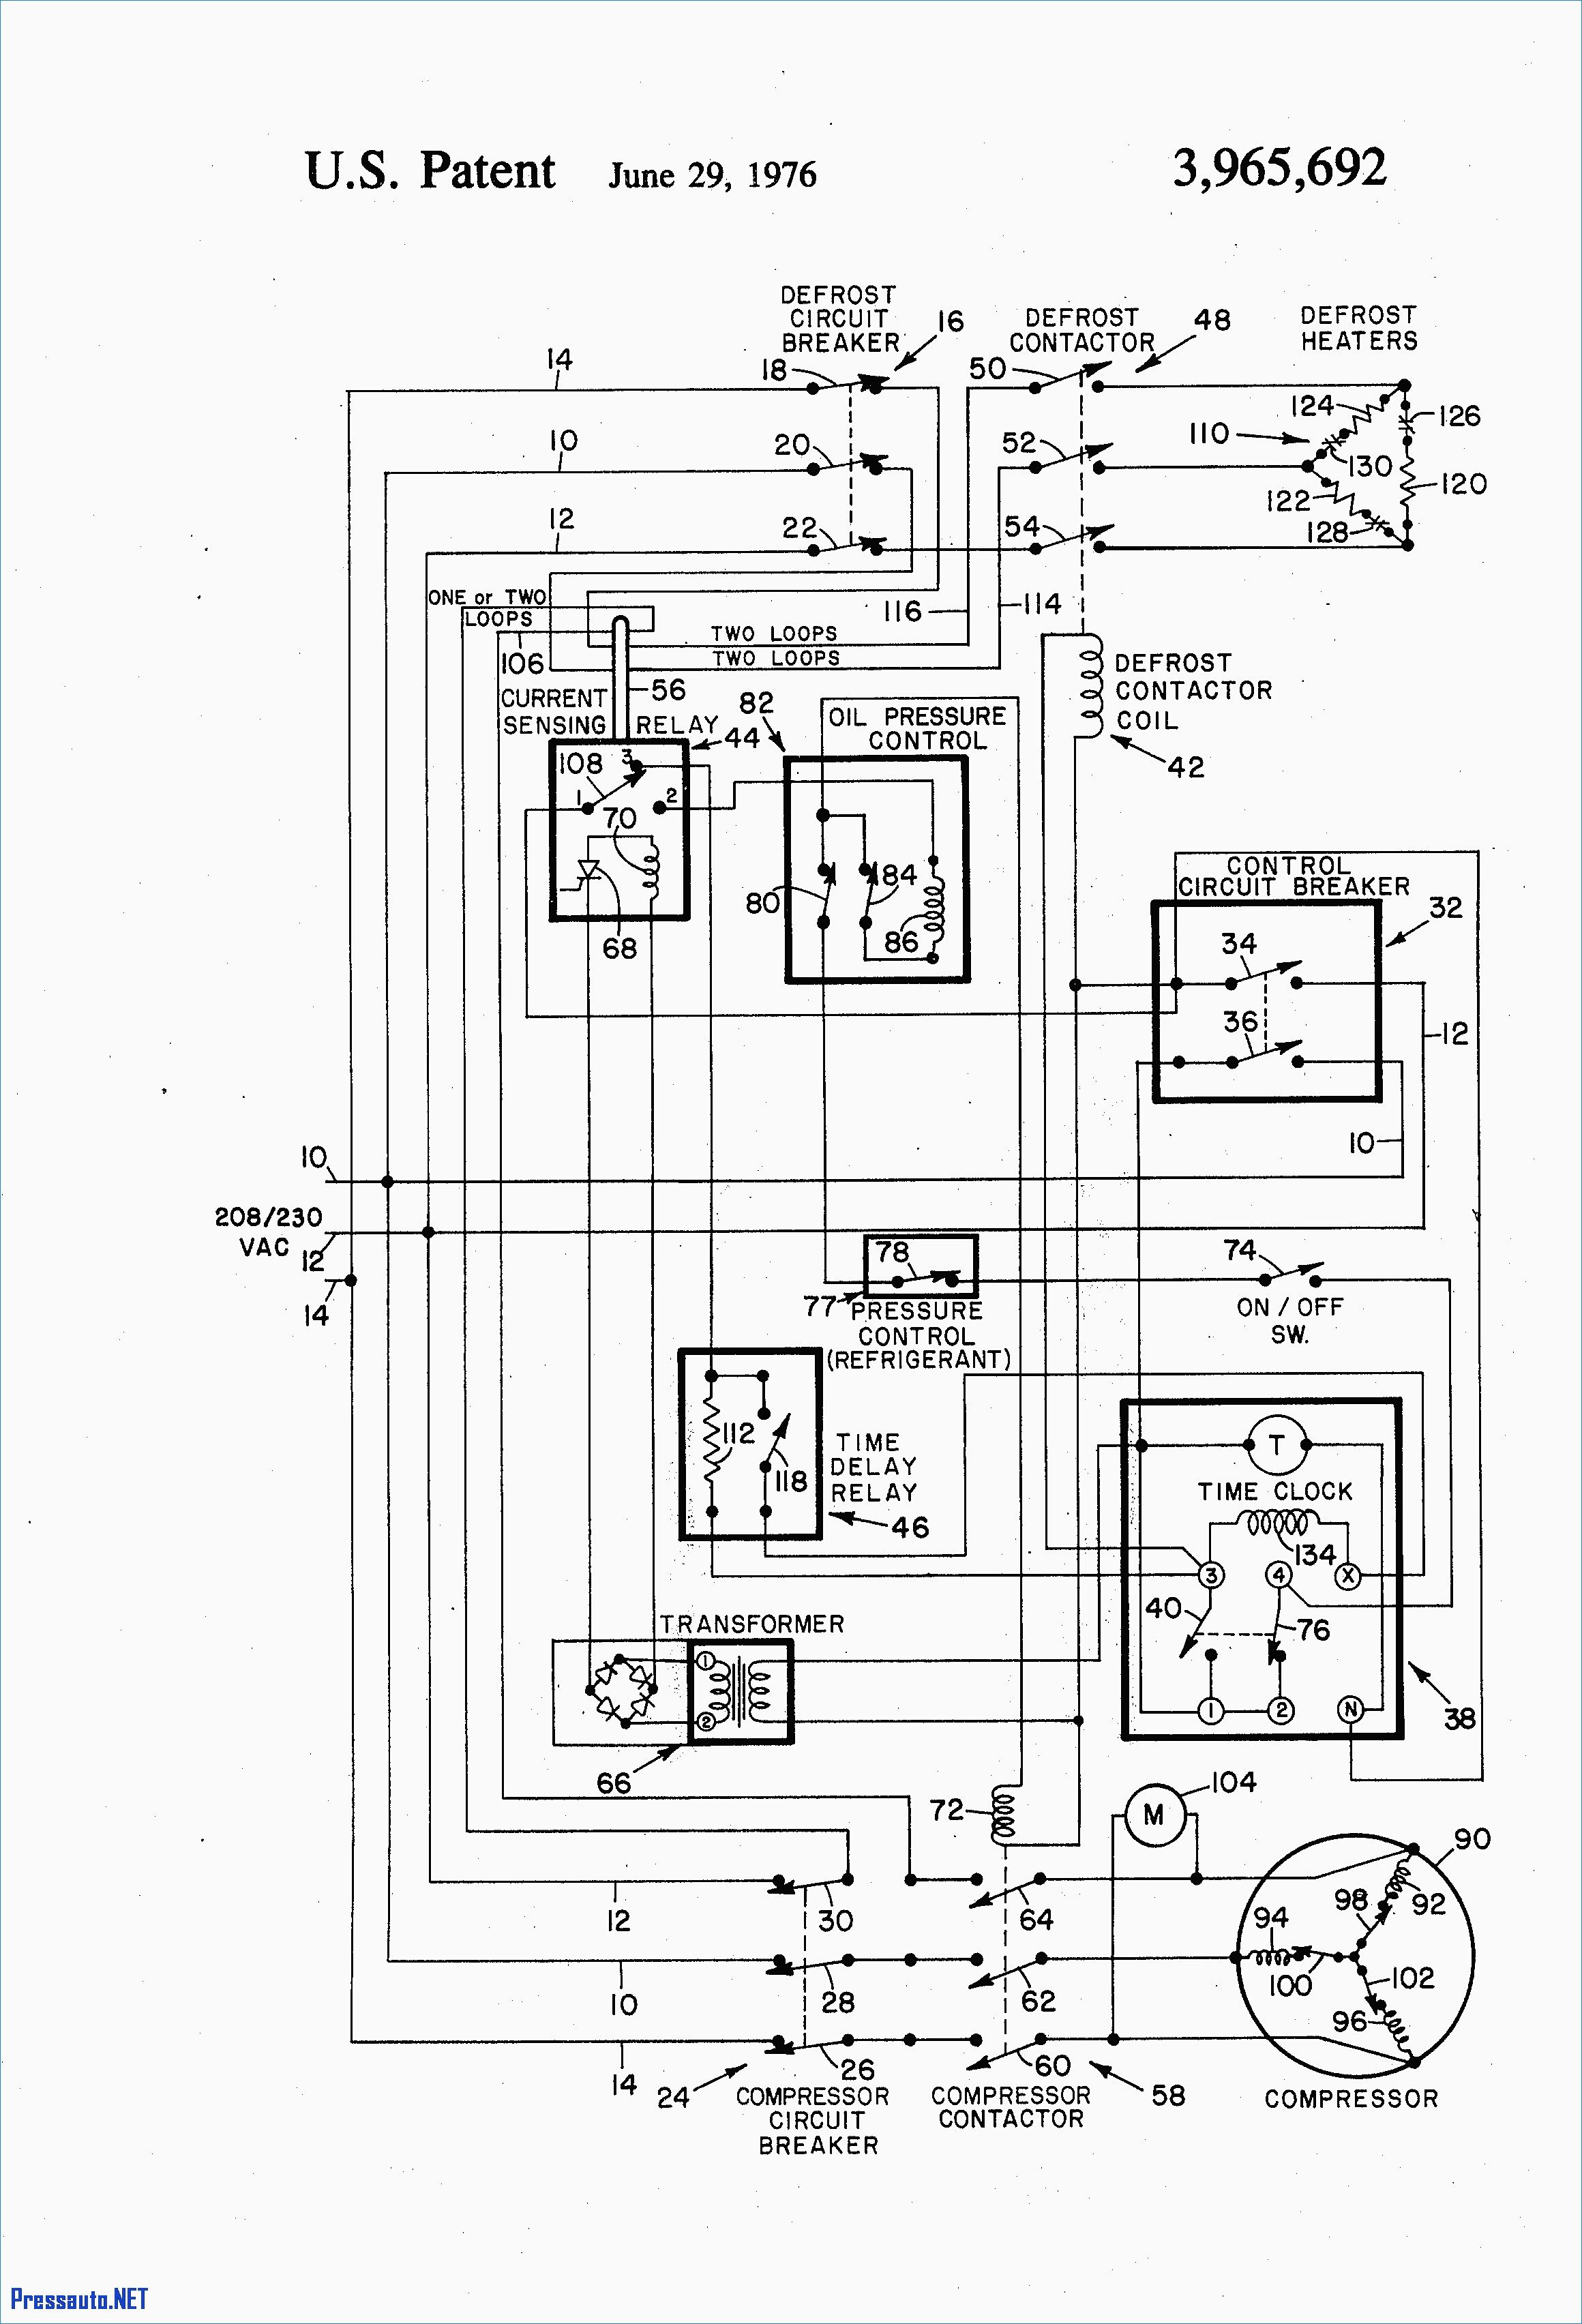 vfd wiring diagram Download-lenze inverter wiring diagram new eaton vfd wiring diagram wiring rh sandaoil co Jack Pump with VFD VFD Schematic 6-a